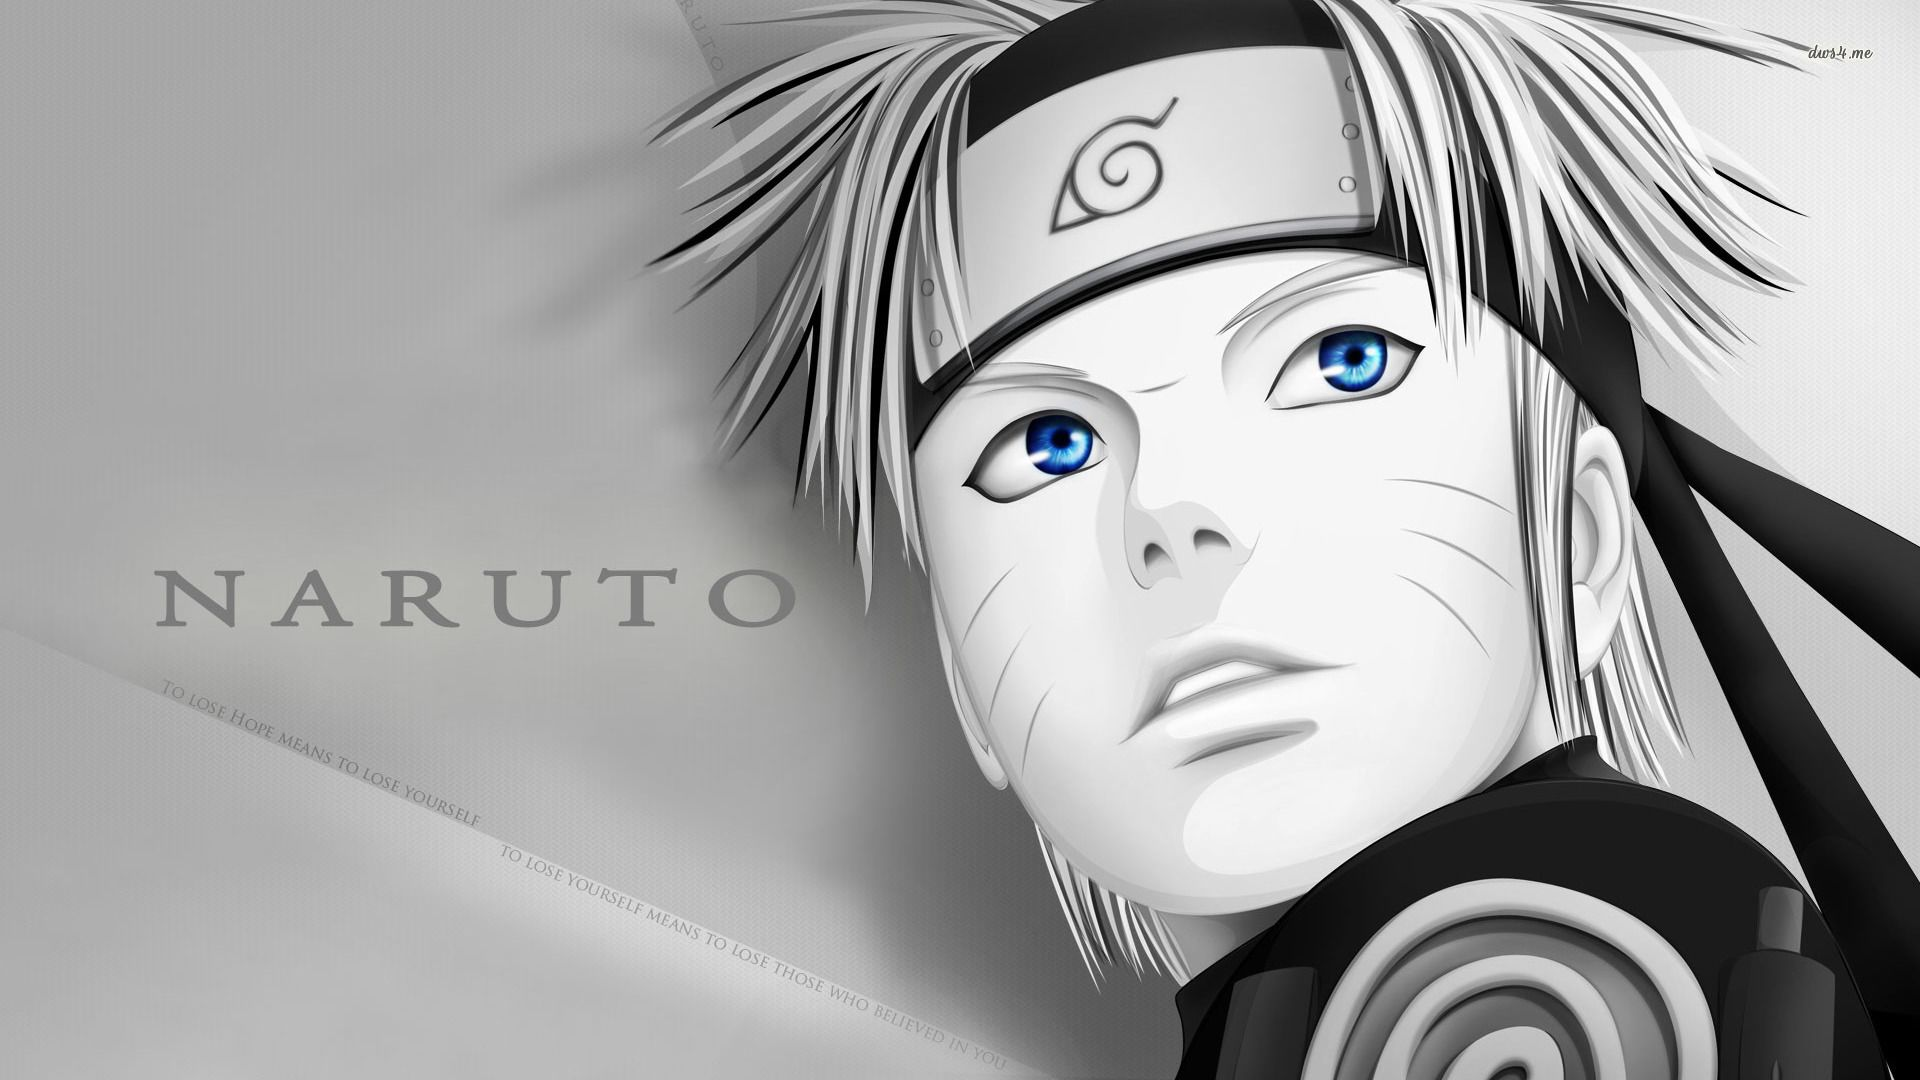 Naruto Hokage Wallpaper Hd With Images Naruto Wallpaper